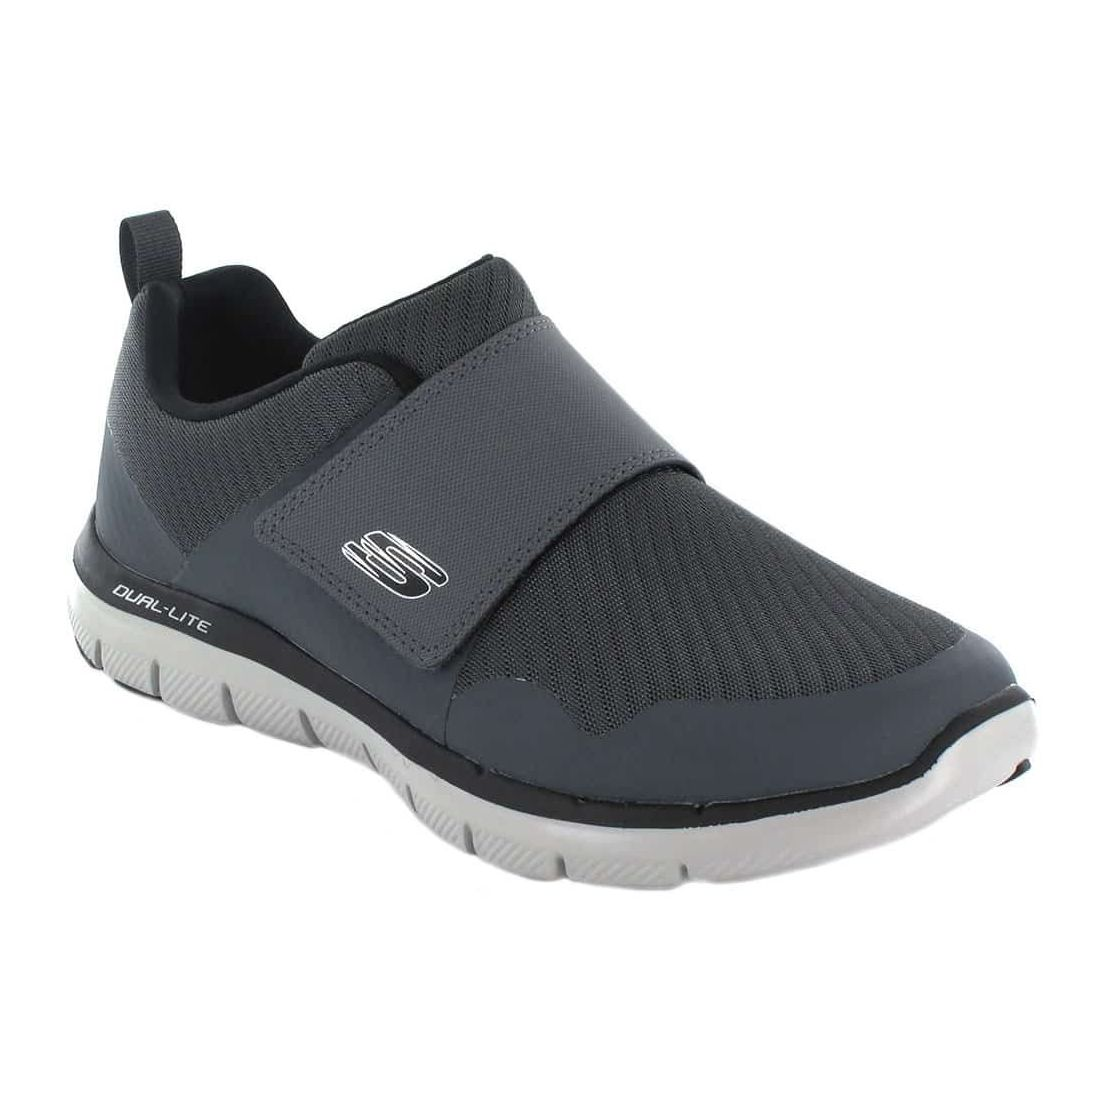 Skechers Gurn Gris Skechers Chaussures Casual Homme Lifestyle Tailles: 40, 41, 42, 43; Couleur: gris